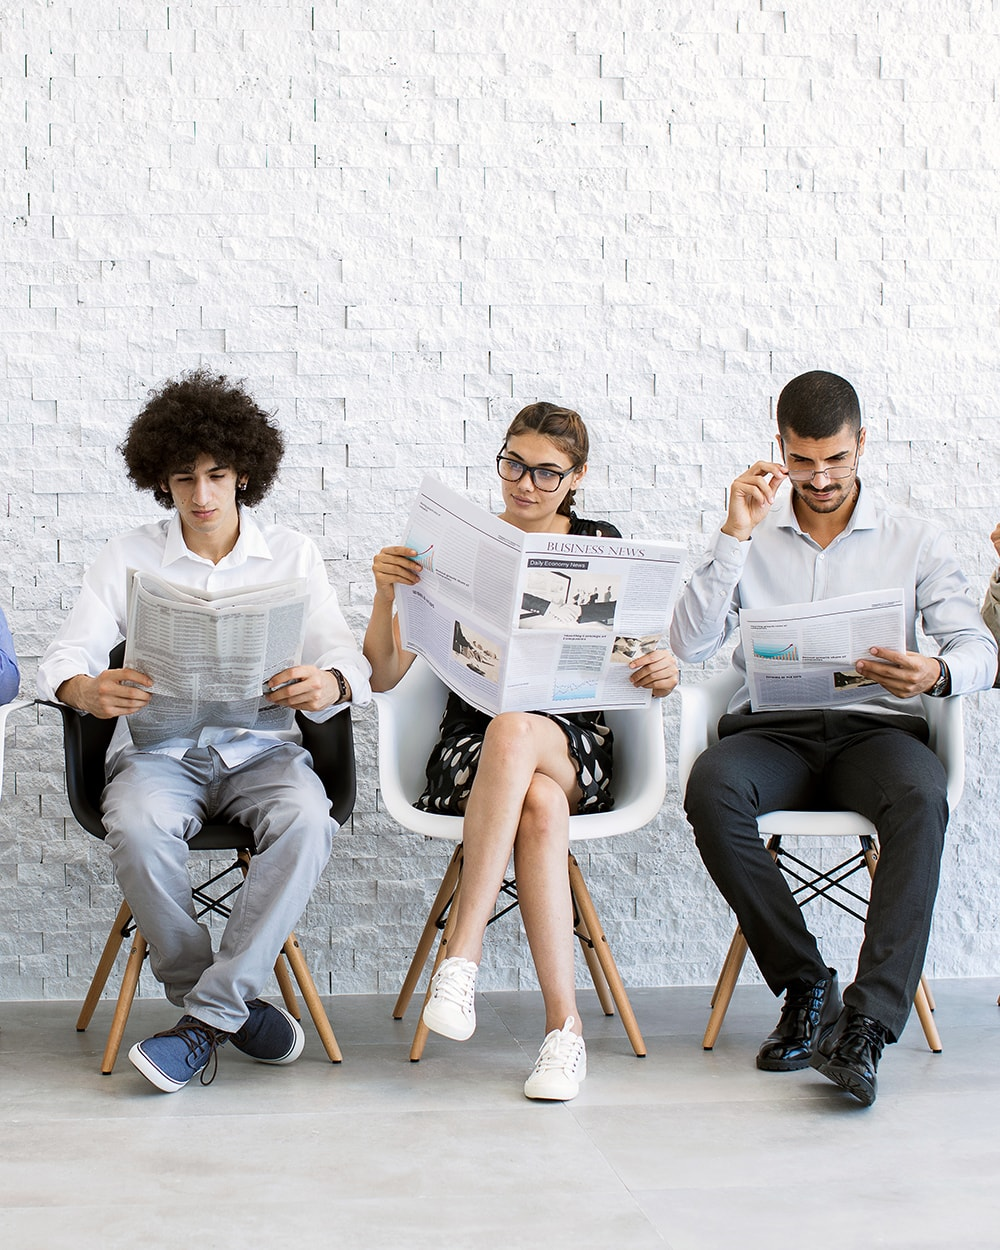 People reading business newspapers, waiting to be called to a focus group. Make money online. Make $100 dollars a day with focus groups.